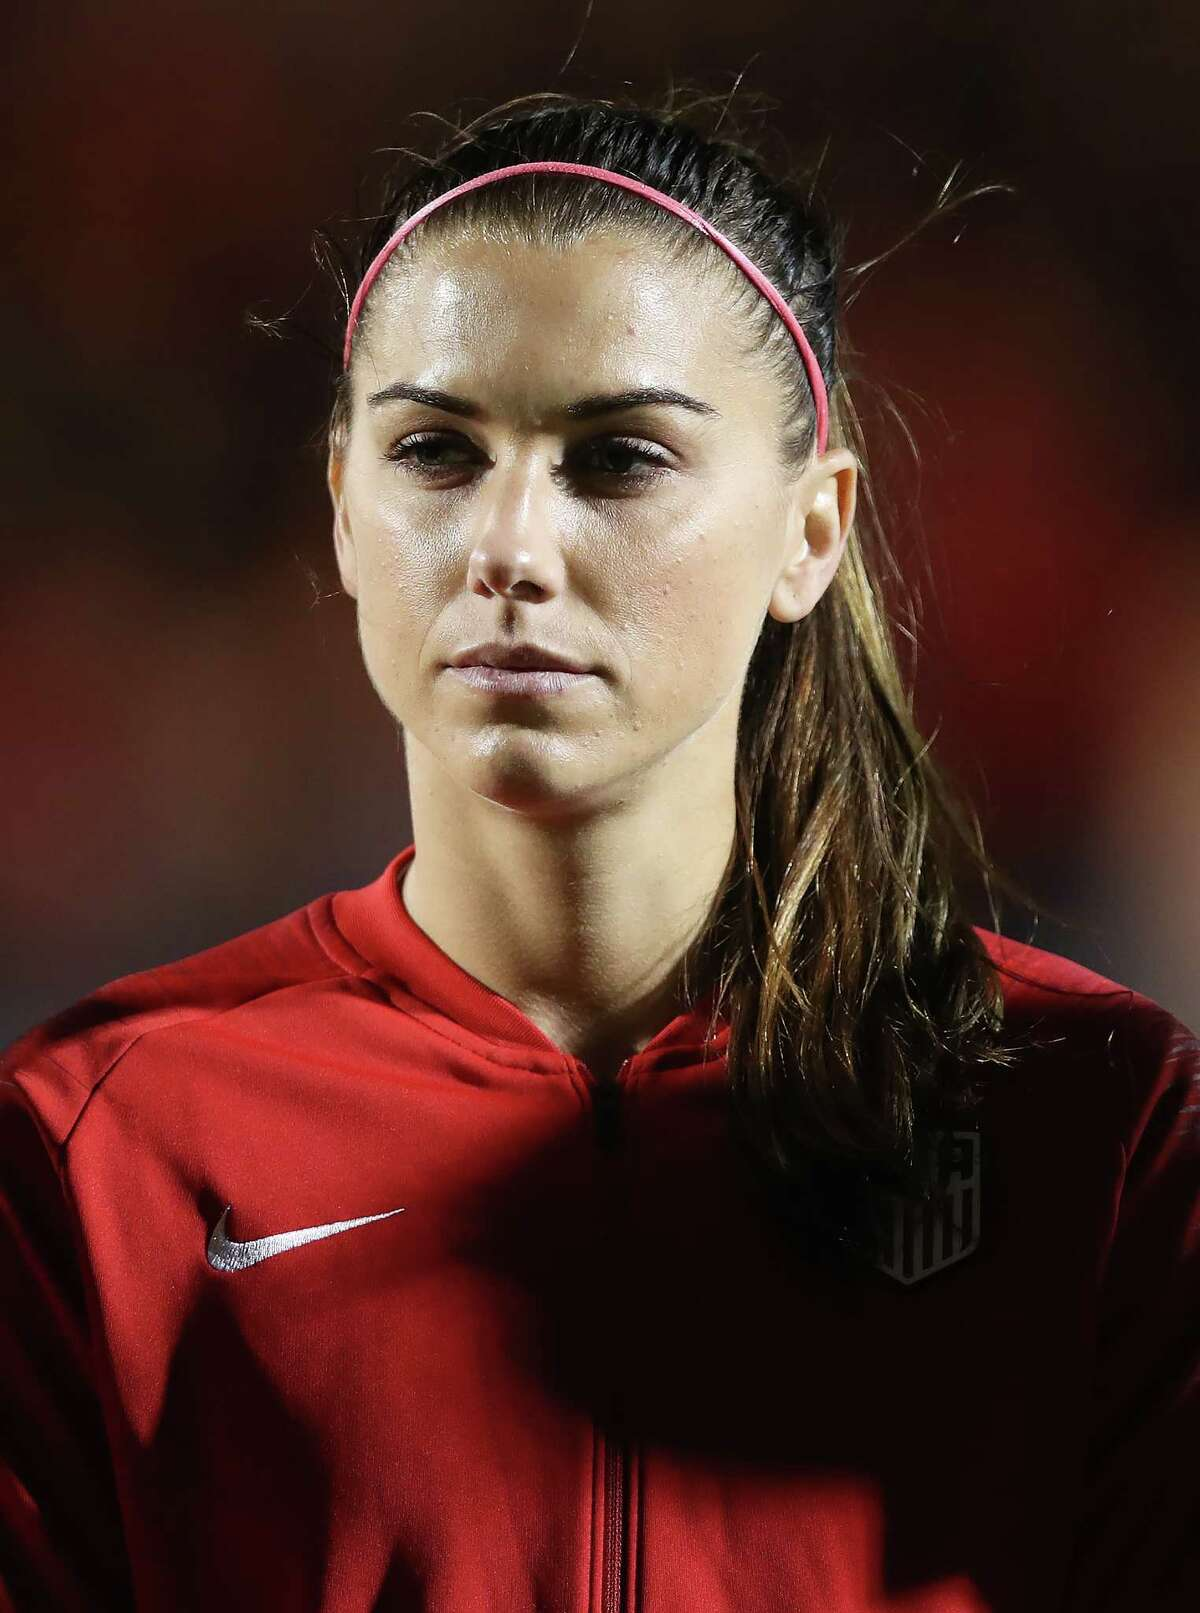 PAISLEY, SCOTLAND - NOVEMBER 13: Alex Morgan of United States looks on during the Women's International Friendly match between Scotland and United States at The Simple Digital Arena on November 13, 2018 in Paisley, Scotland. (Photo by Ian MacNicol/Getty Images)